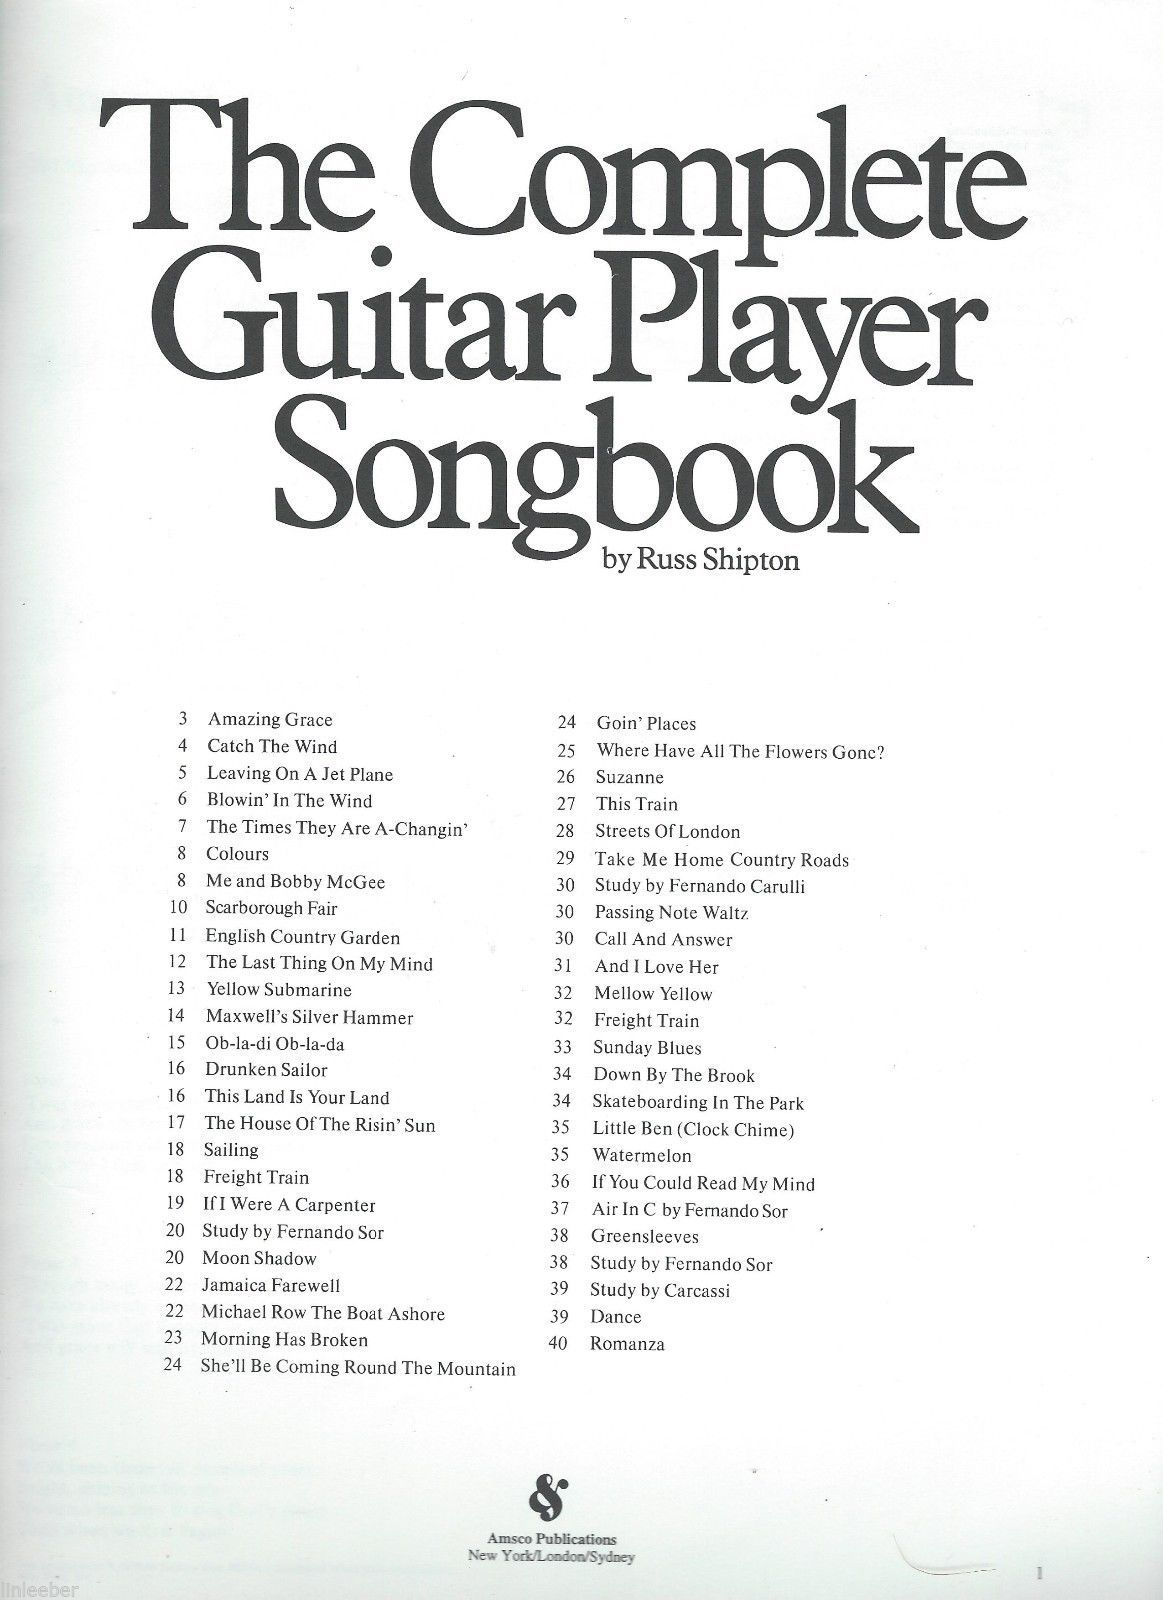 The Complete Guitar Player Volume 1 by Russ Shipton;40 songs;40 pages;1980 PB